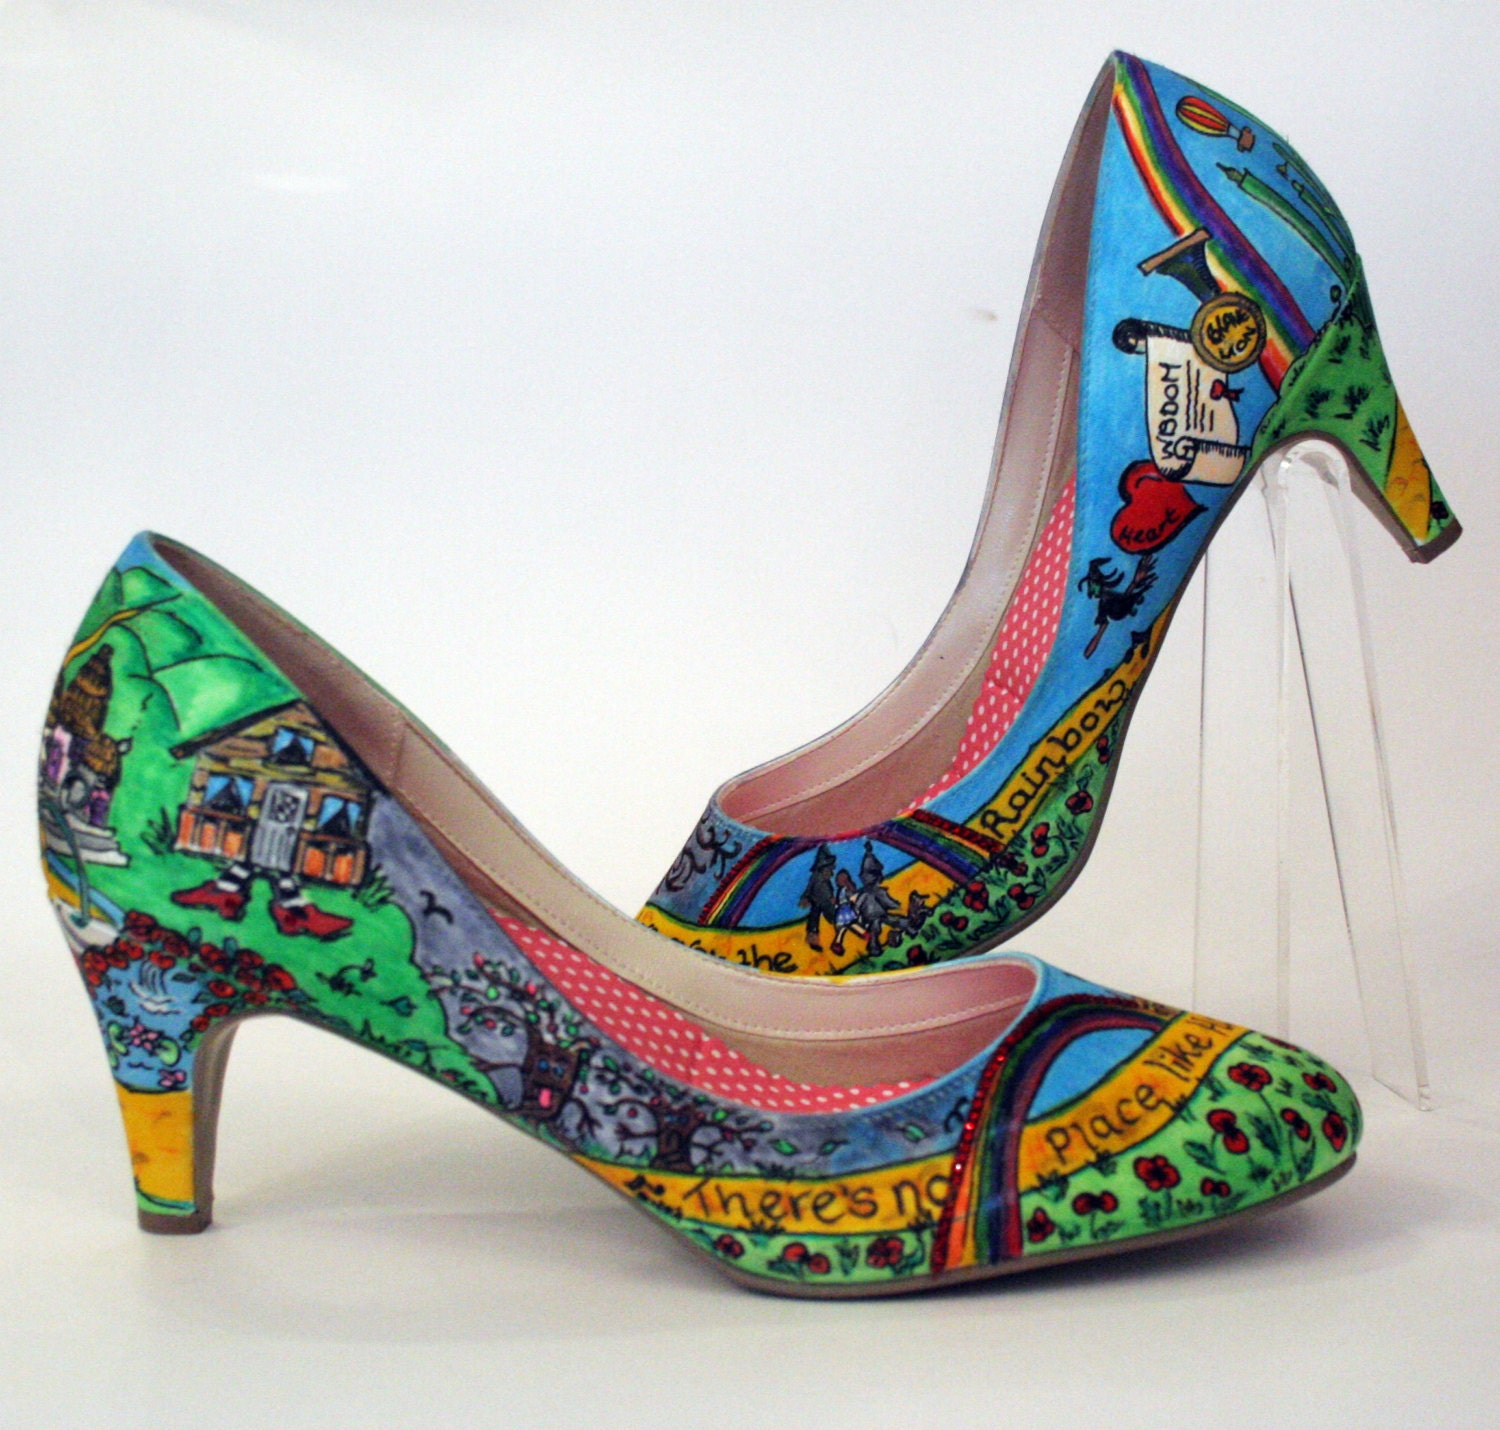 GLINDA  Wizard Of Oz Inspired Hand Painted Custom Shoe Decoration Over The Rainbow Hand Drawn Bespoke Shoes